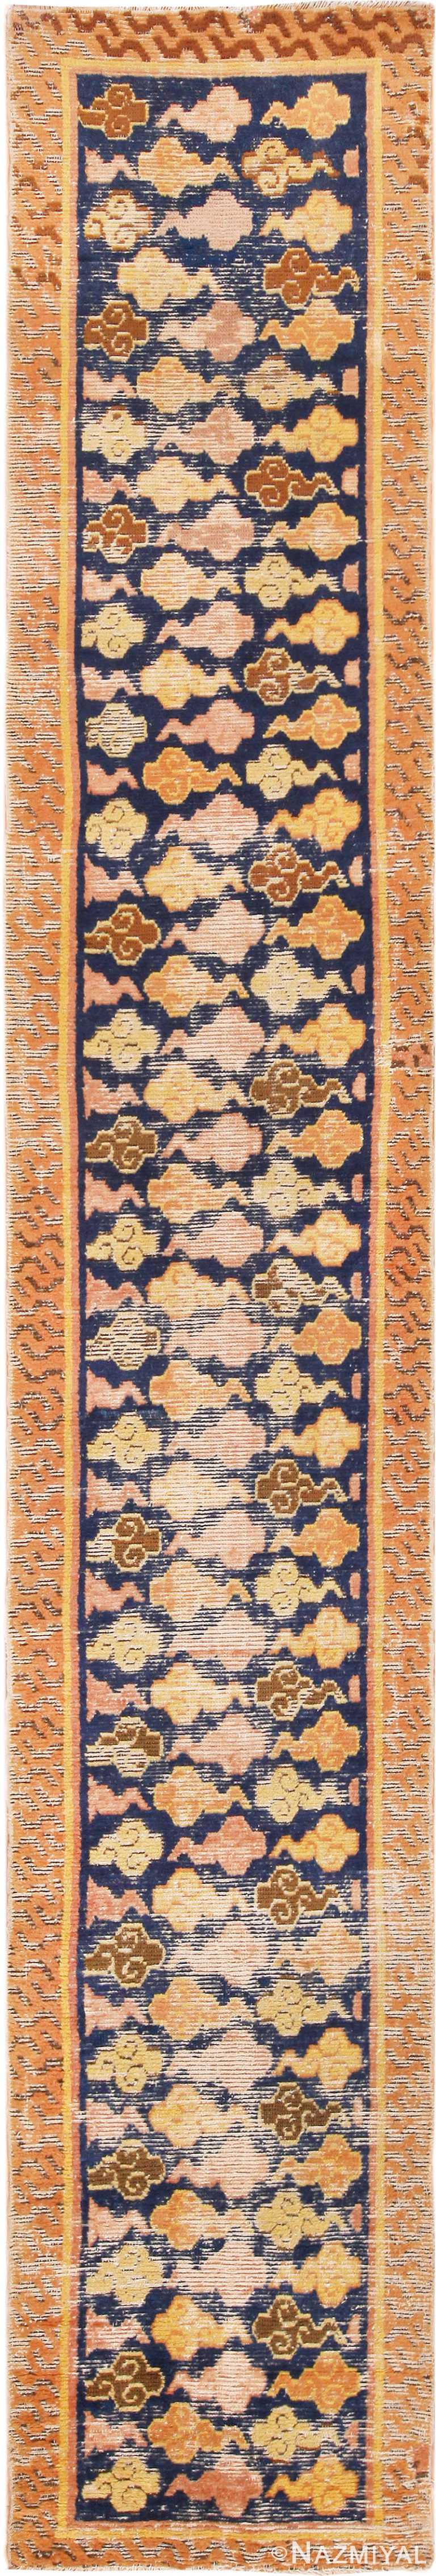 Rare and Collectible Antique 17th Century Chinese Ningxia Runner Rug #70214 from Nazmiyal Antique Rugs in NYC